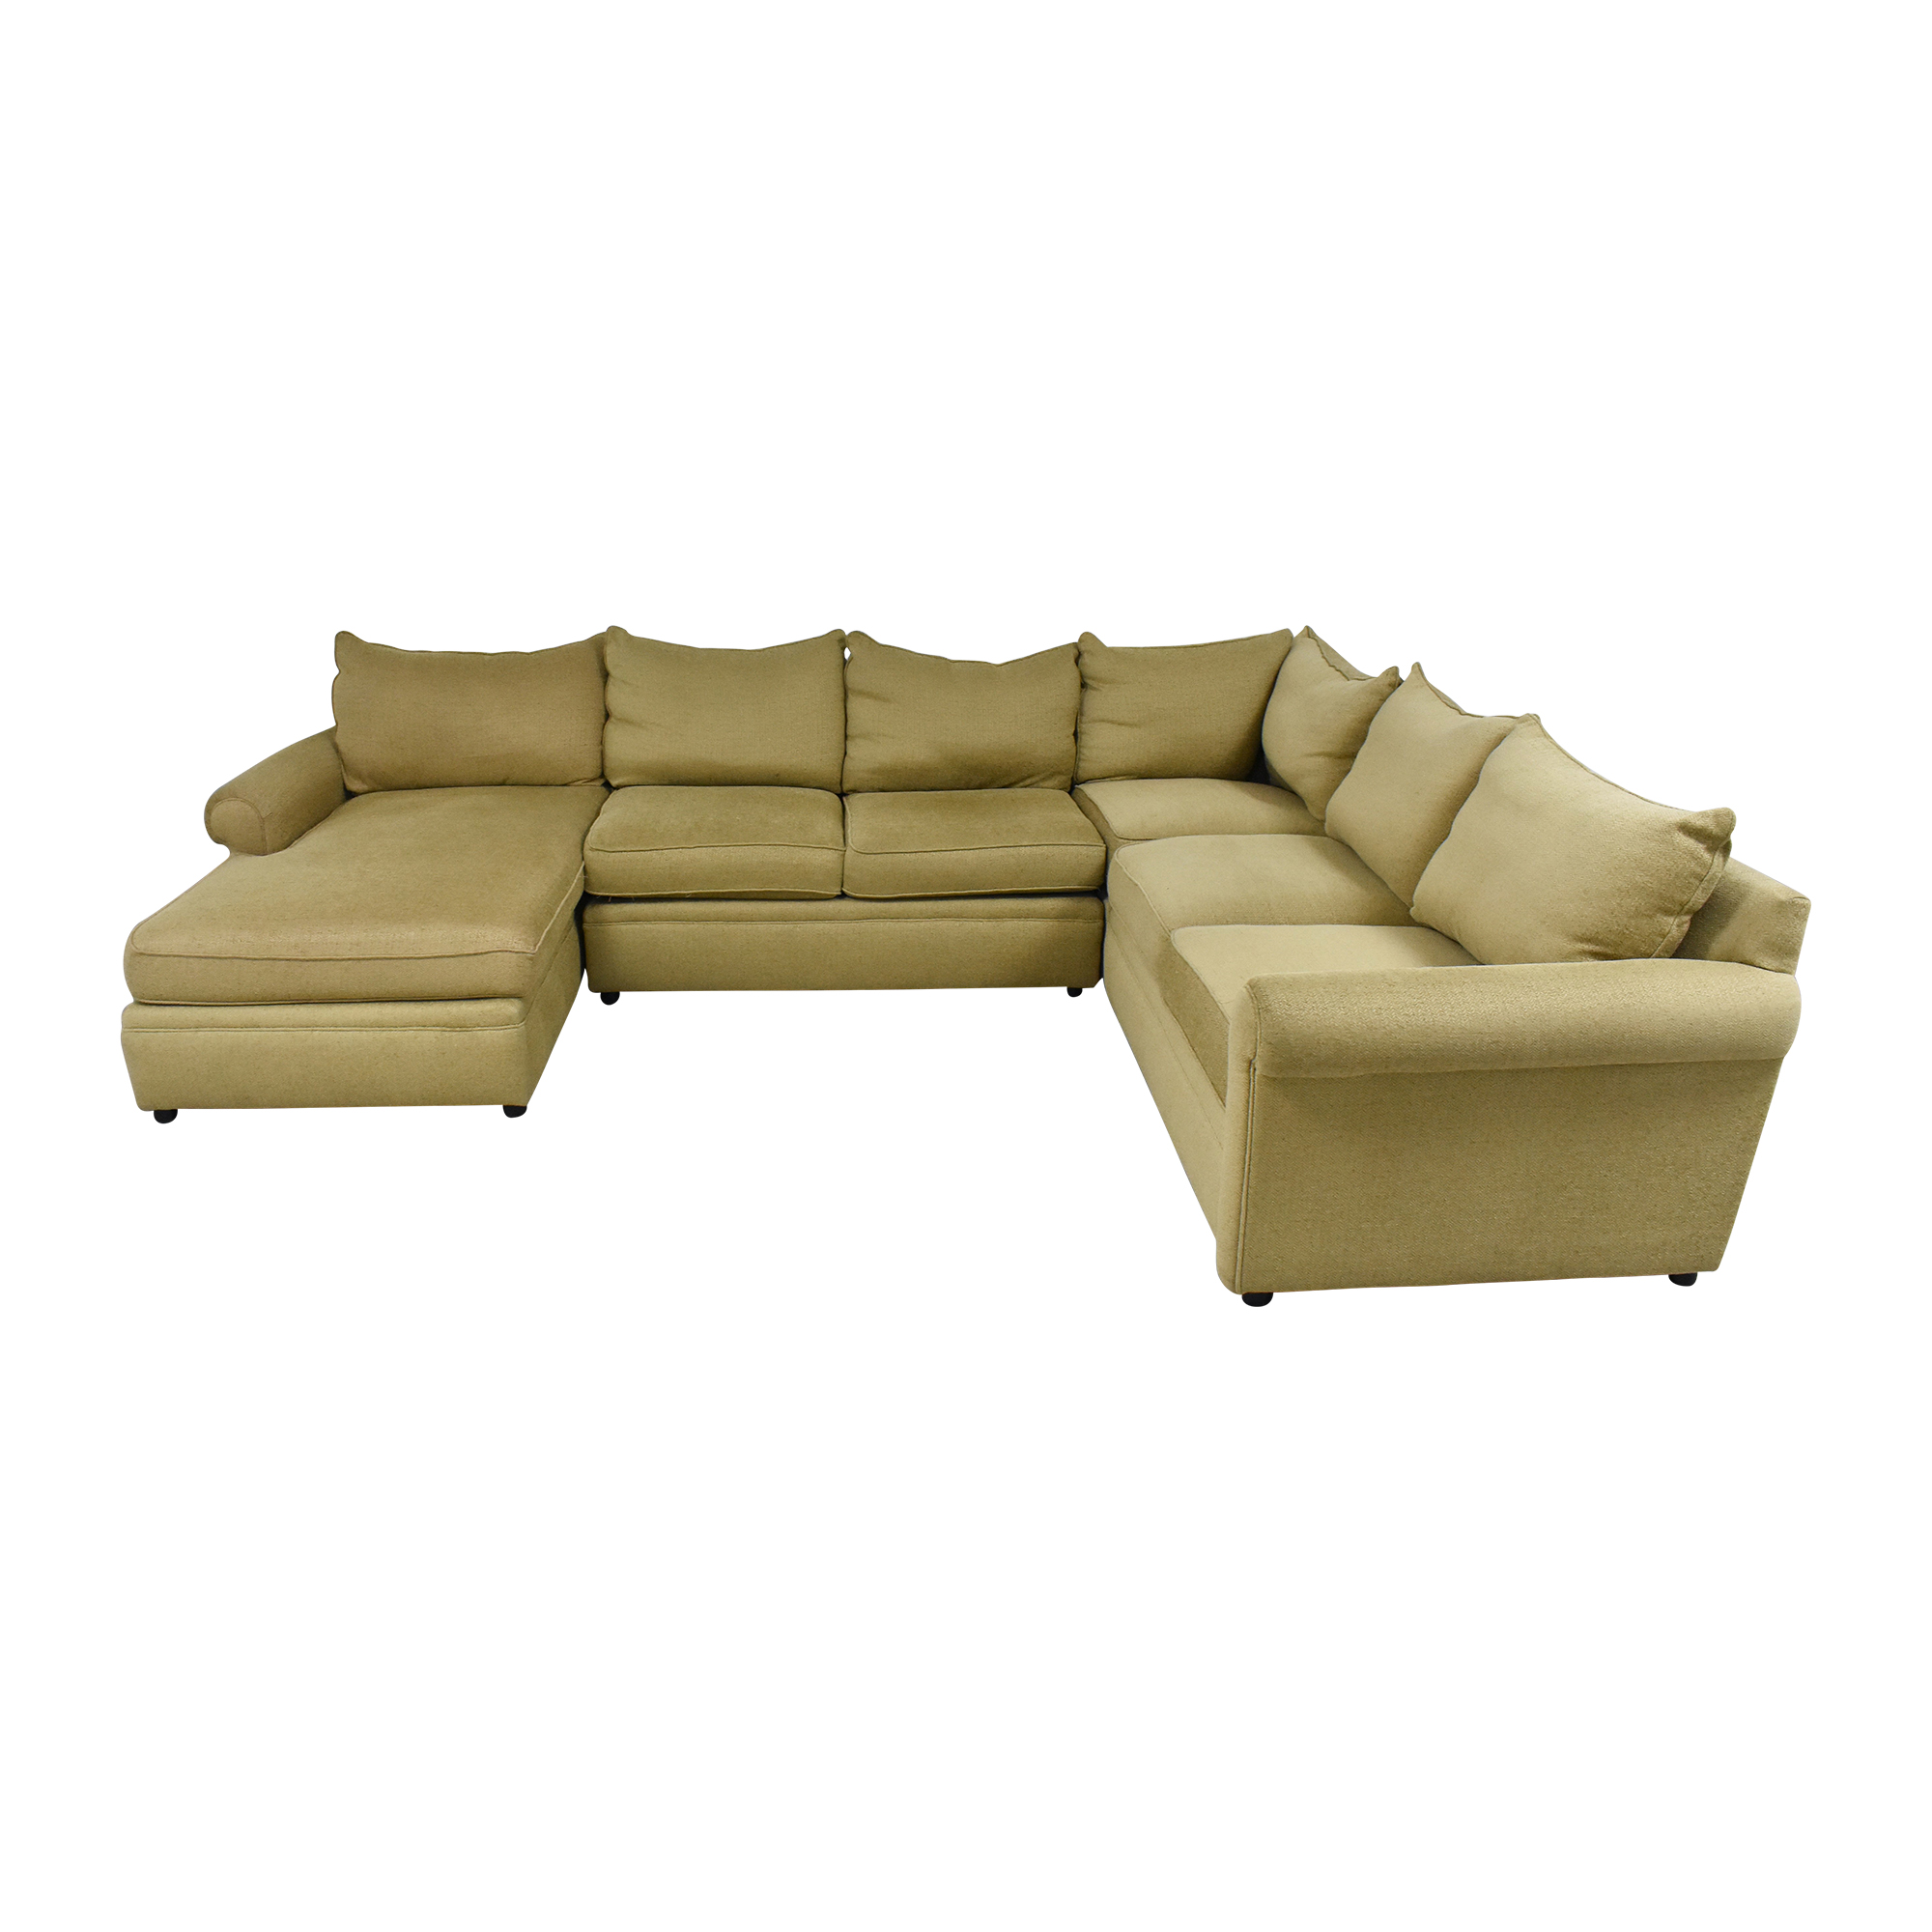 Domain Home Domain Home Sectional Sofa with Chaise for sale